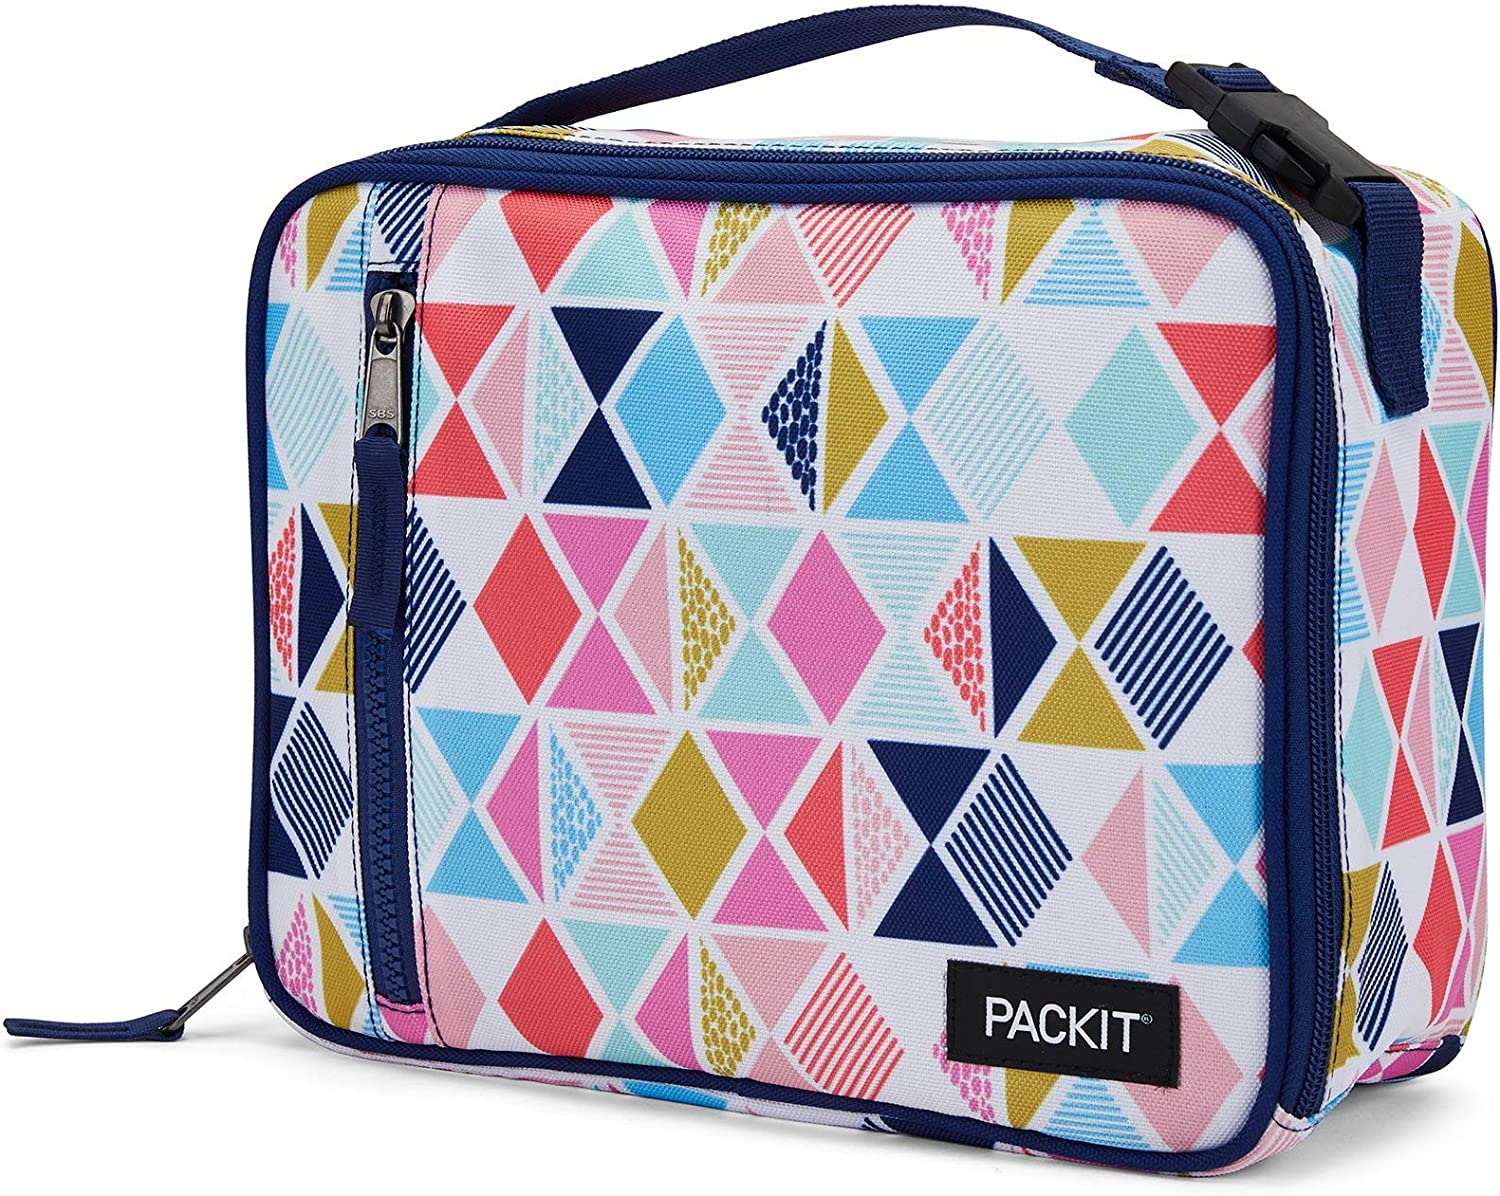 PackIt Freezable Classic Lunch Box, Festive Gem